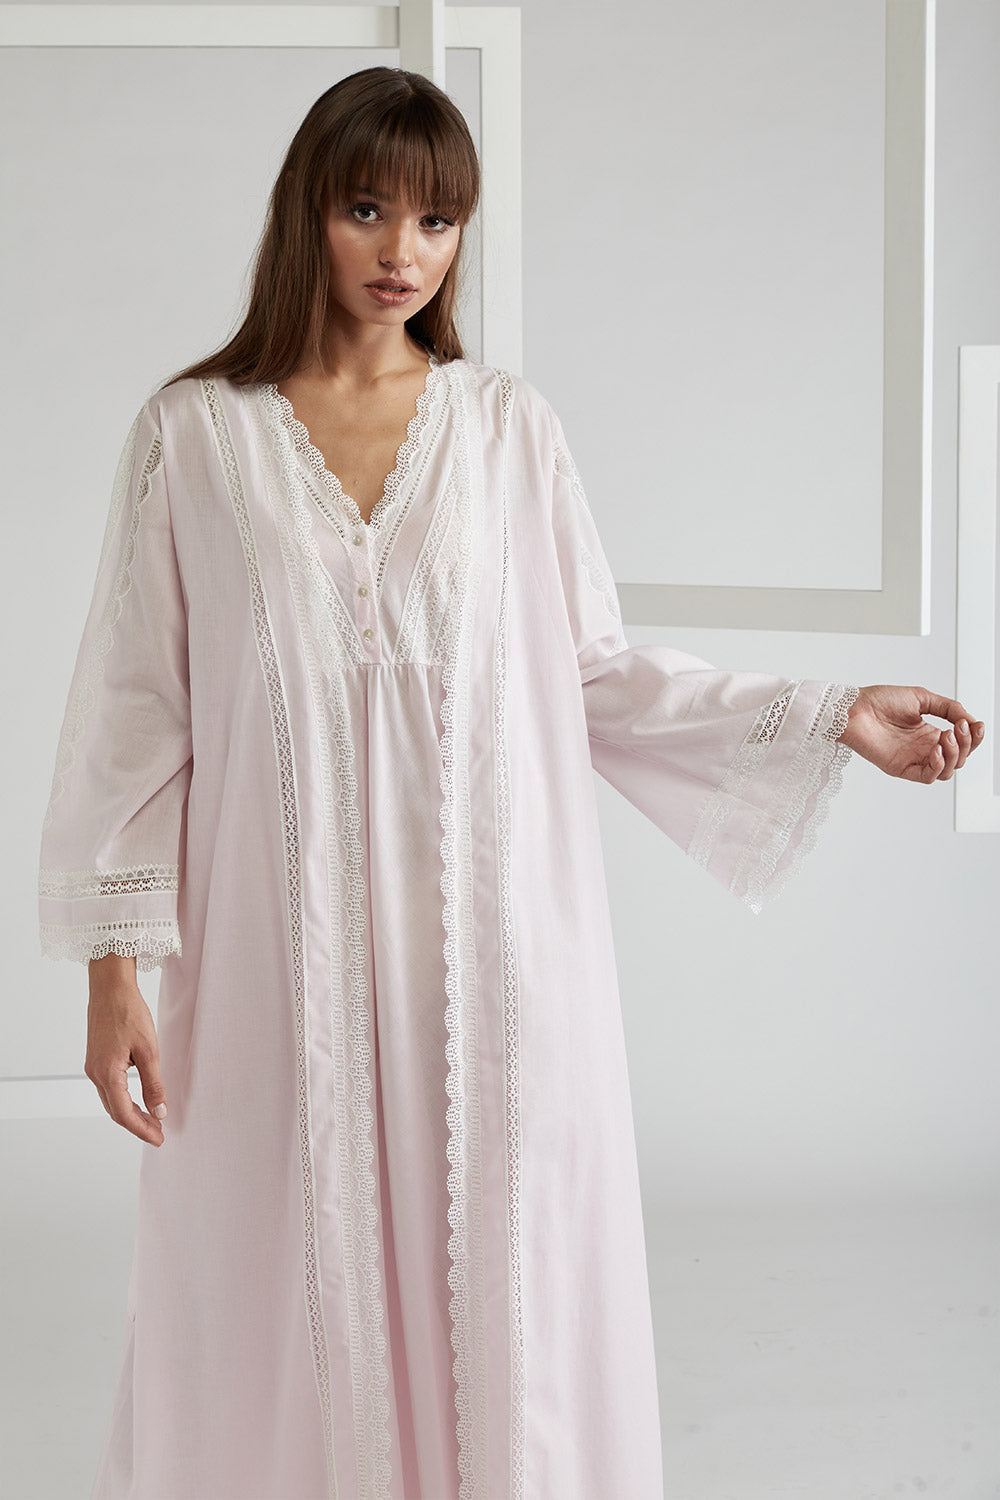 Voile Light Pink Robe Set - Lady Sheer